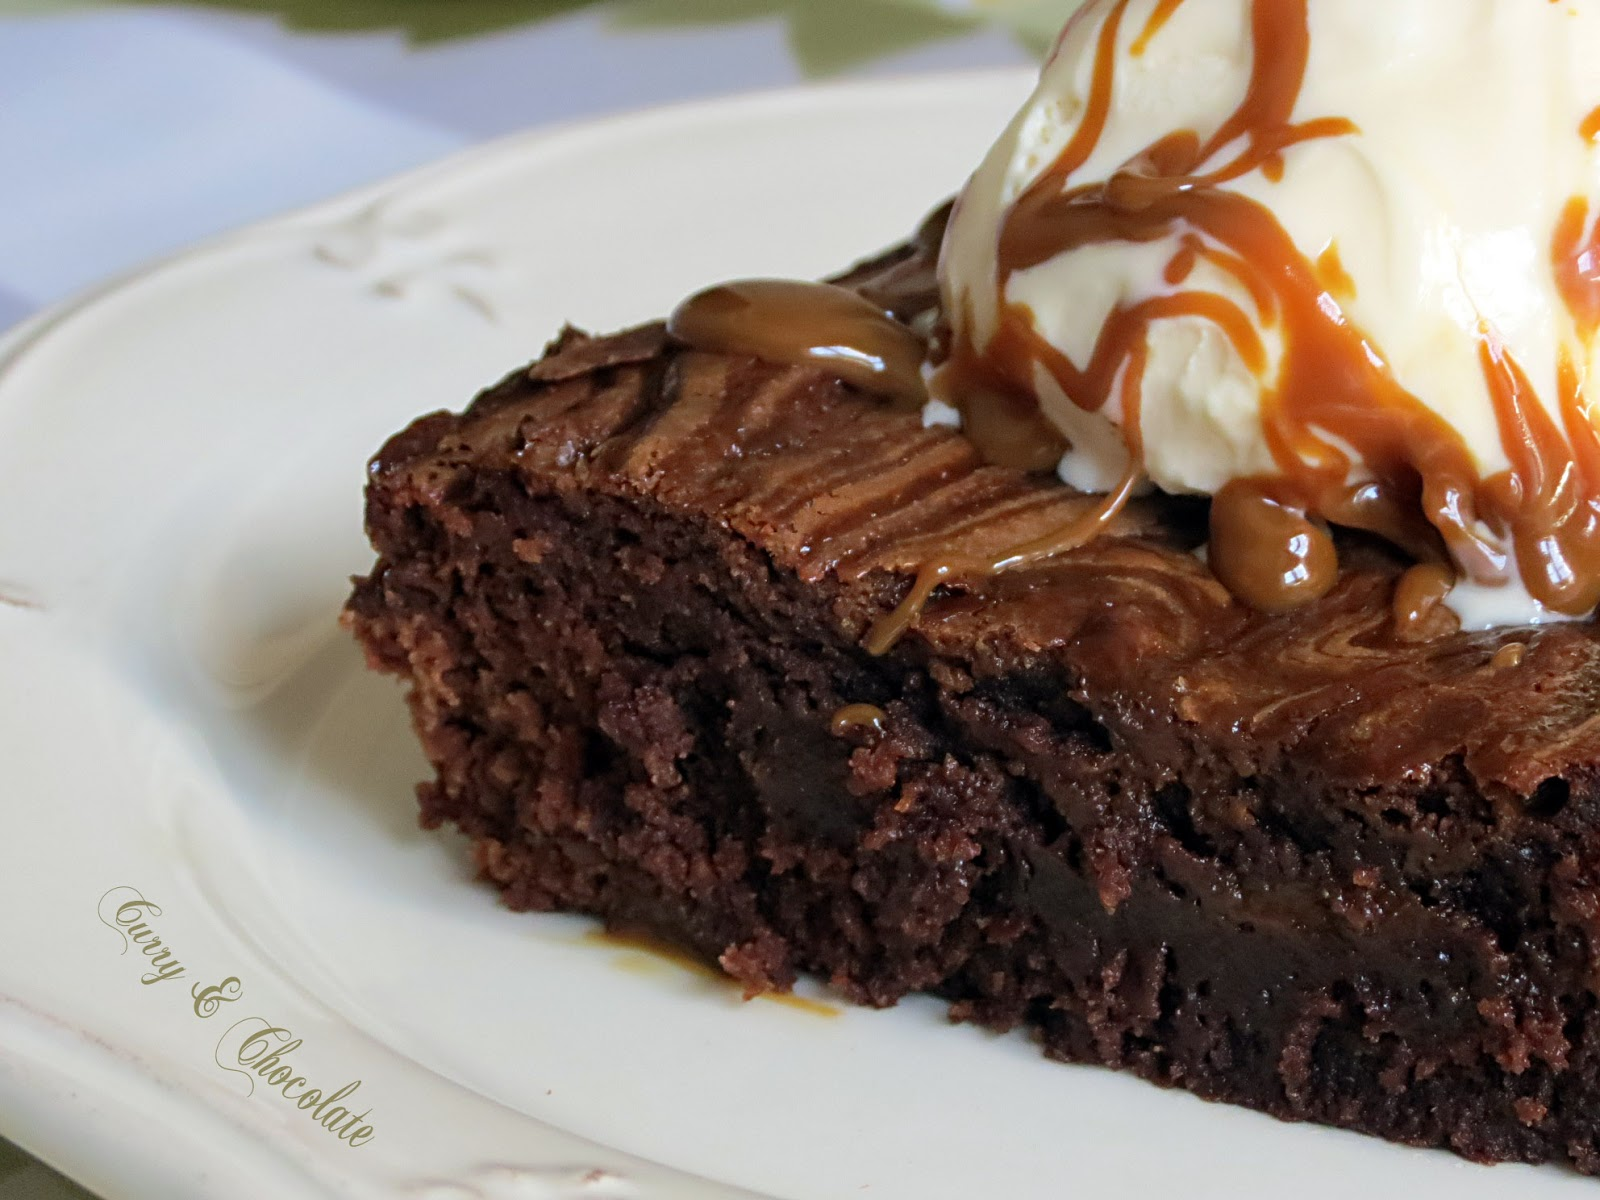 Brownies de chocolate con dulce de leche – Dulce de leche brownies